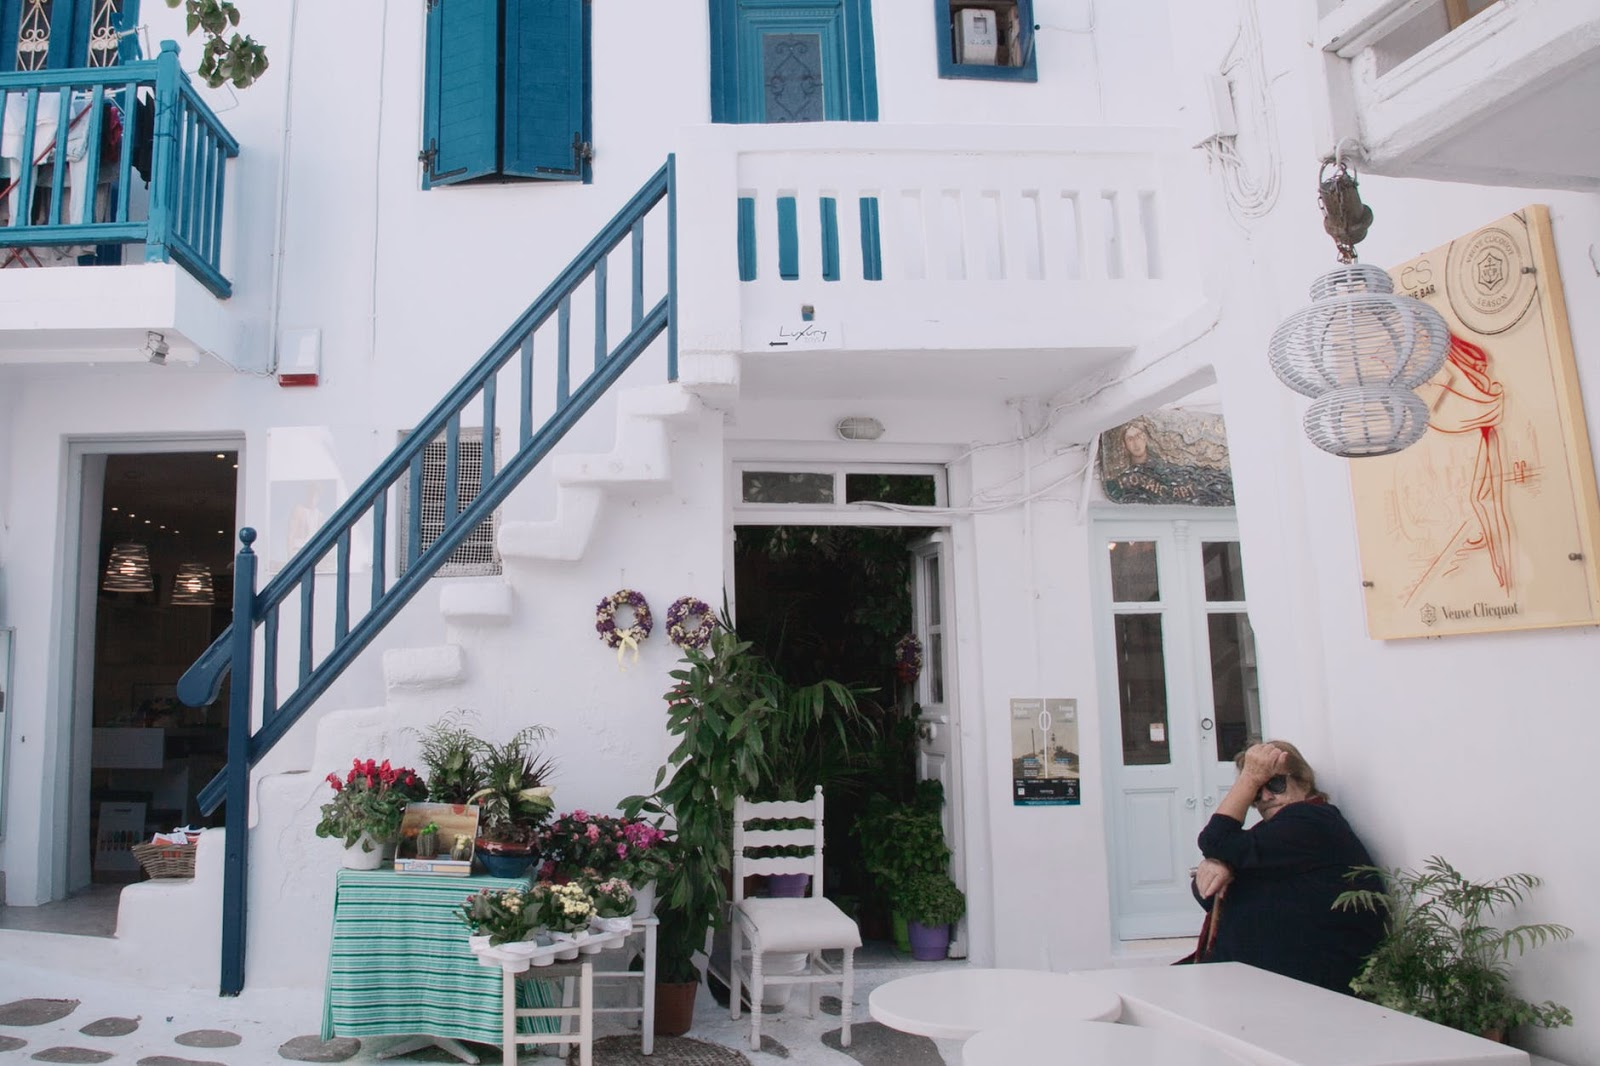 pretty white and blue building in Mykonos, Greece